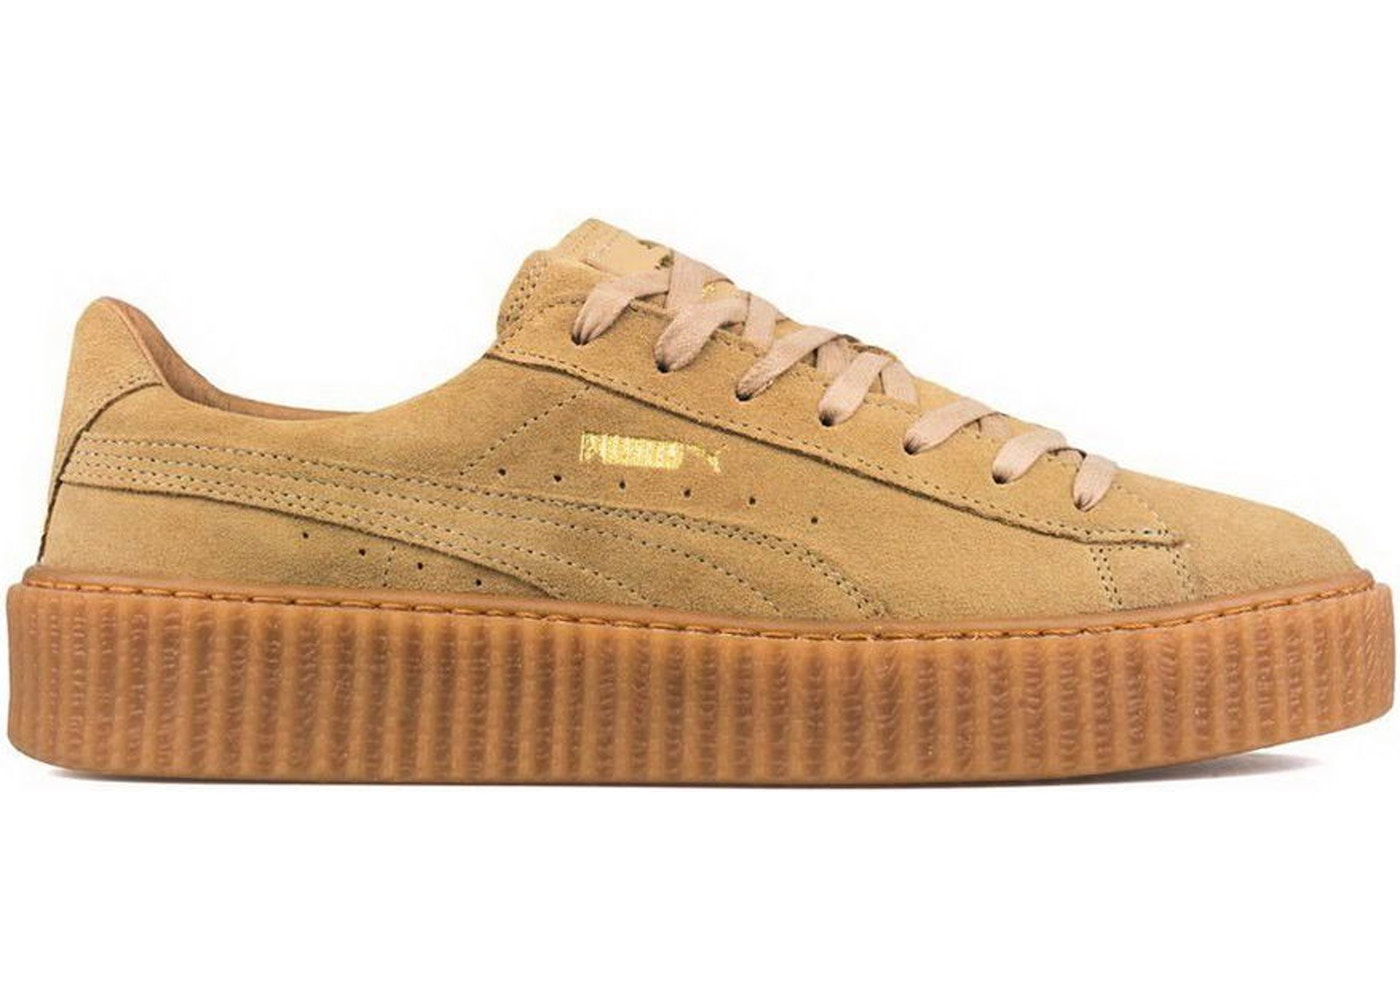 large discount 50-70%off up-to-datestyling Puma Suede Creeper Rihanna Fenty Oatmeal